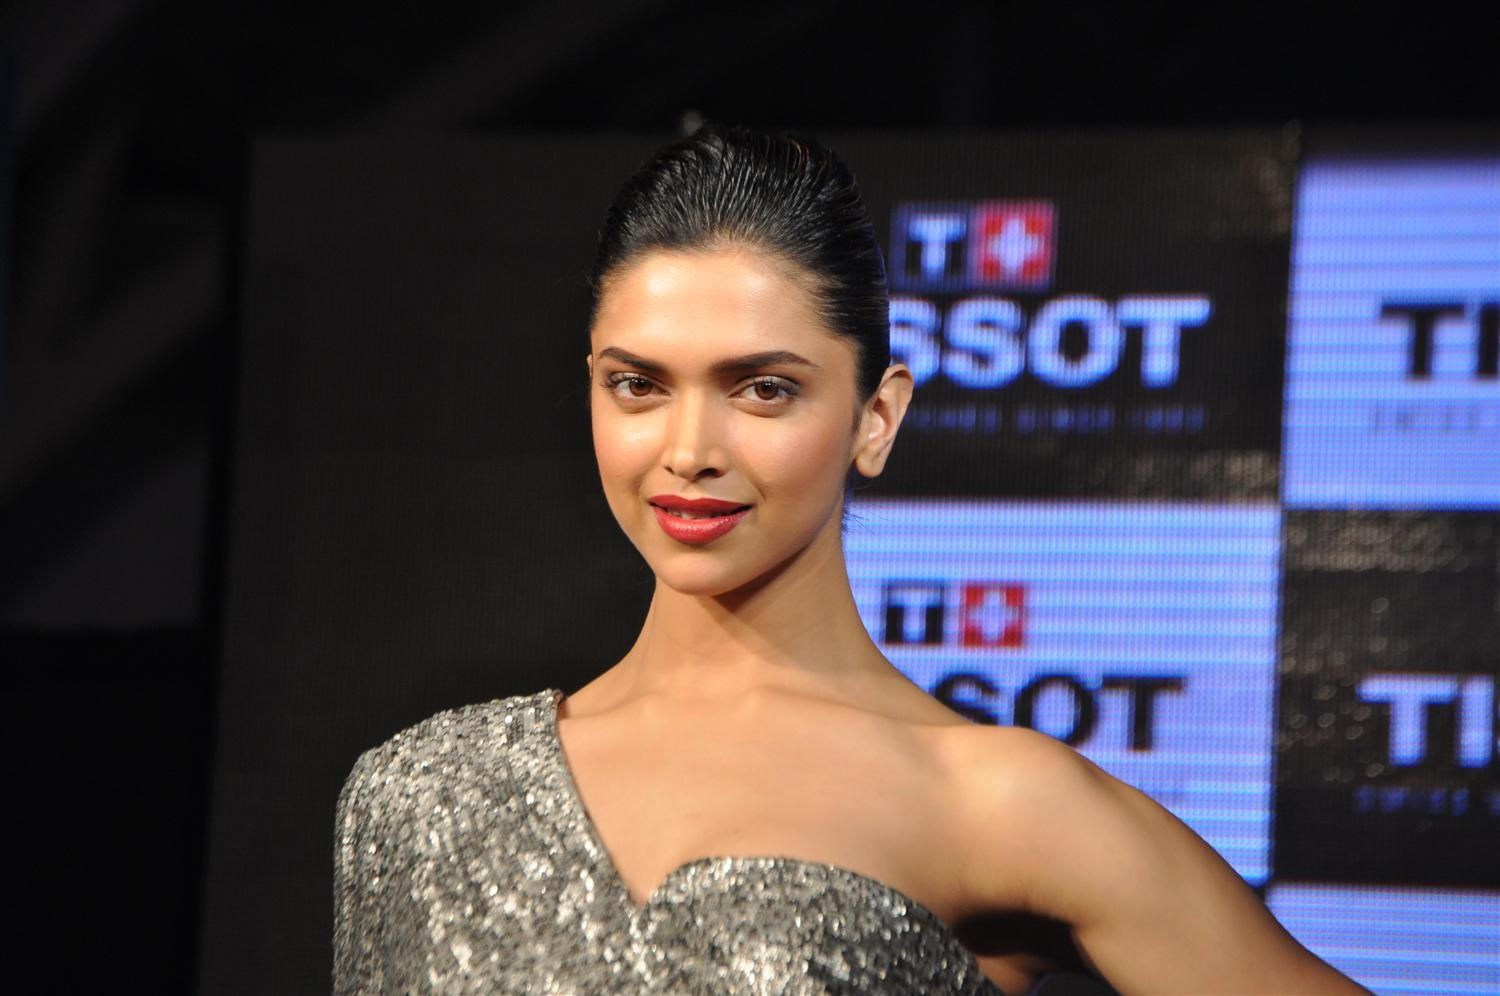 Deepika Padukone Hot Legs Show Photos In Black Dress